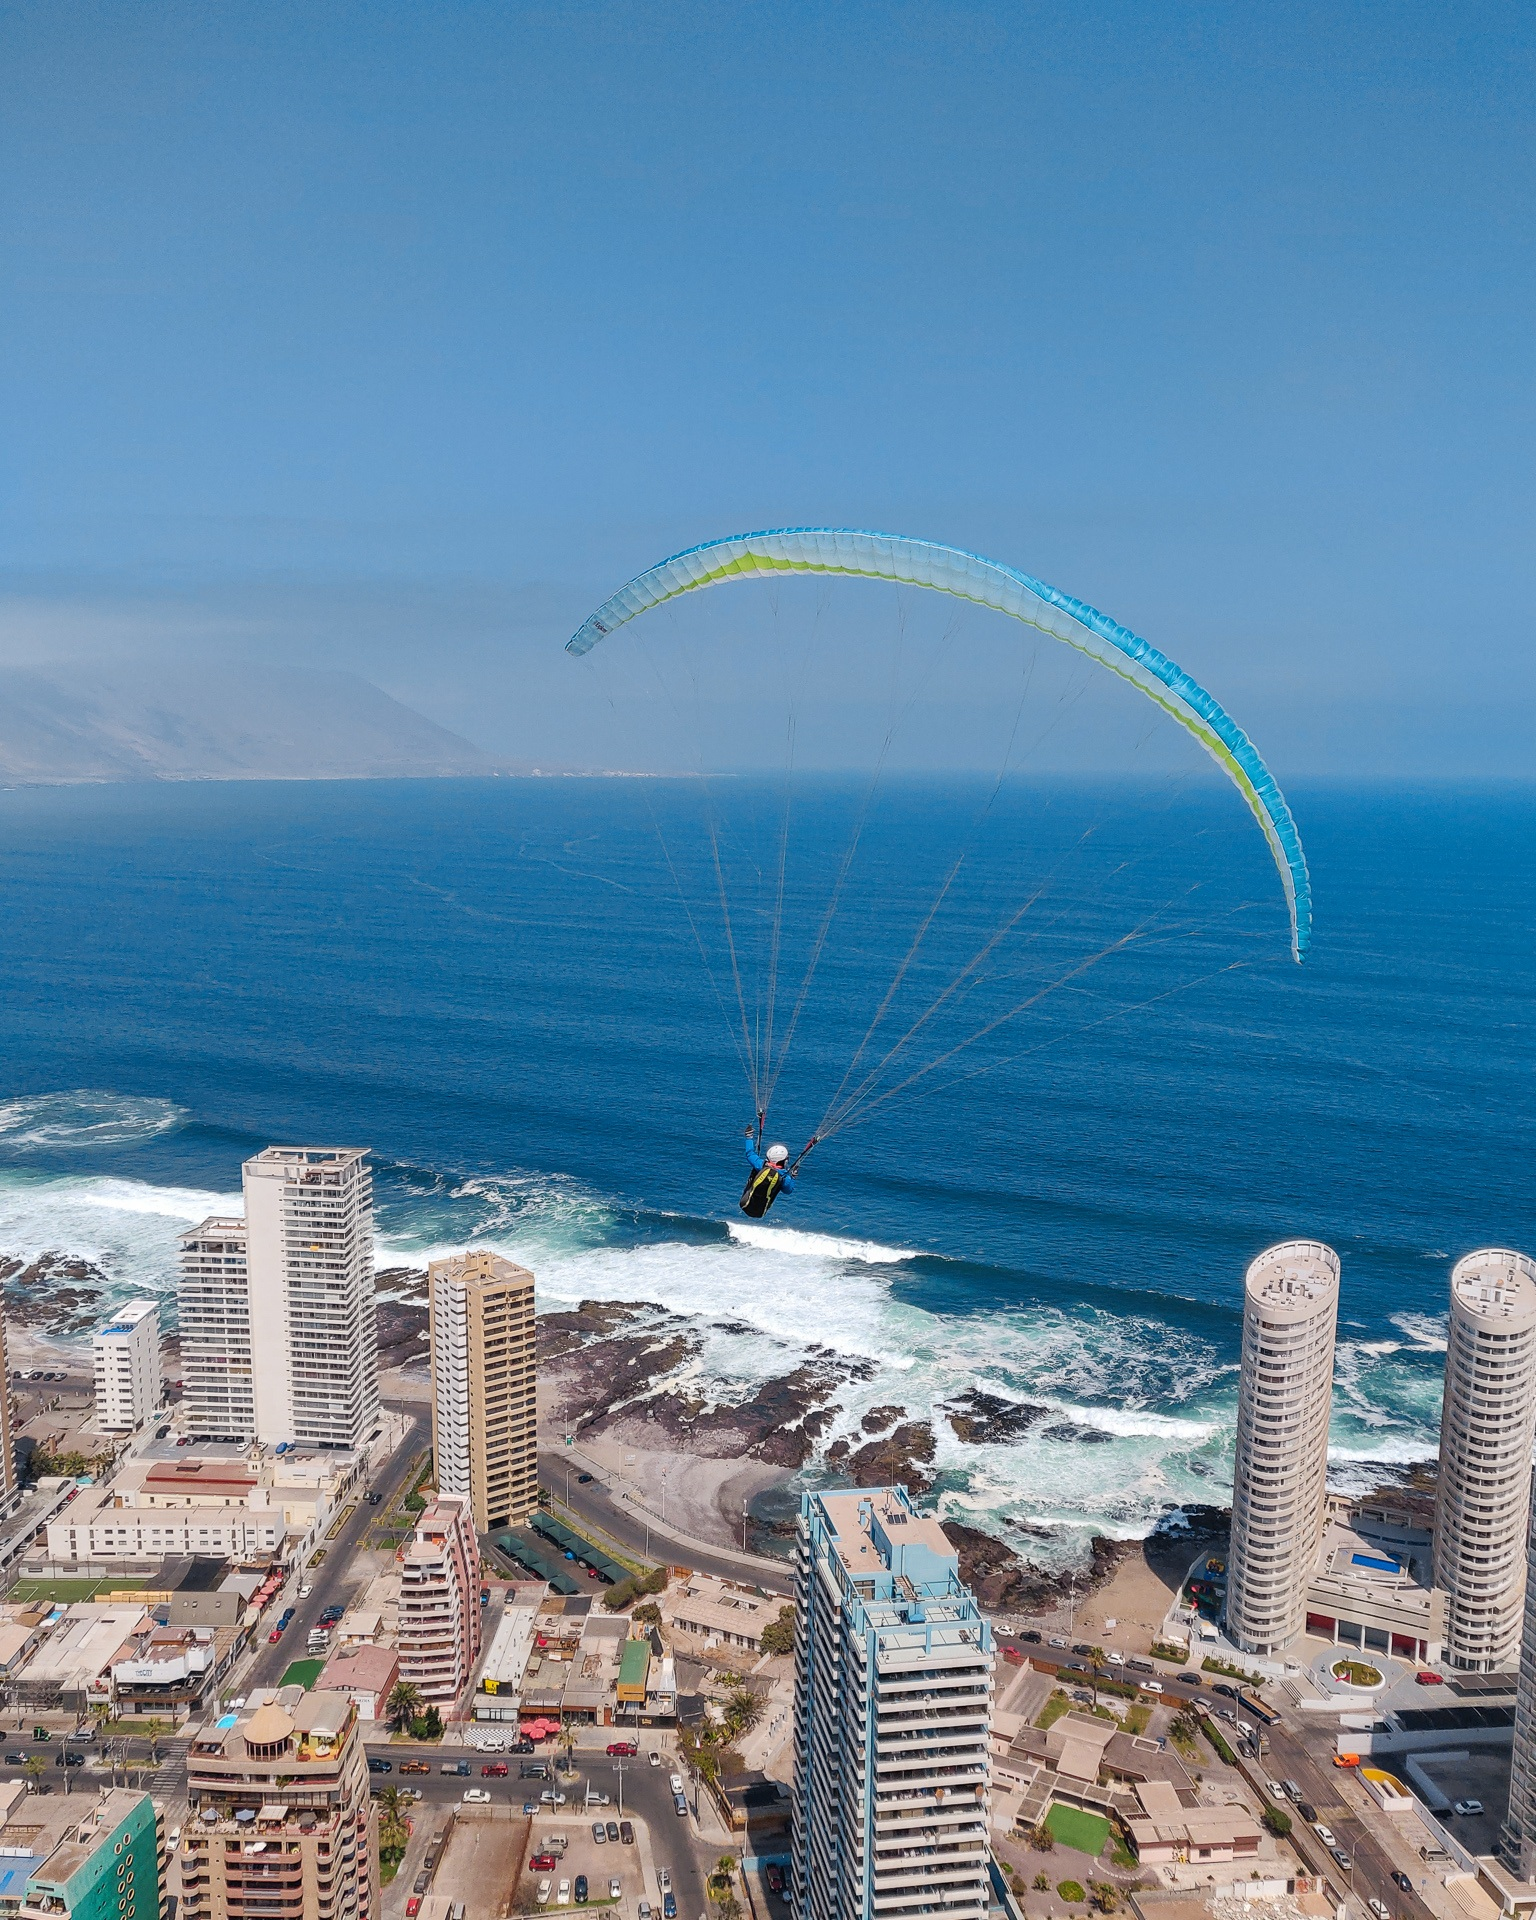 paragliding-landings-in-iquique-chile.jpg